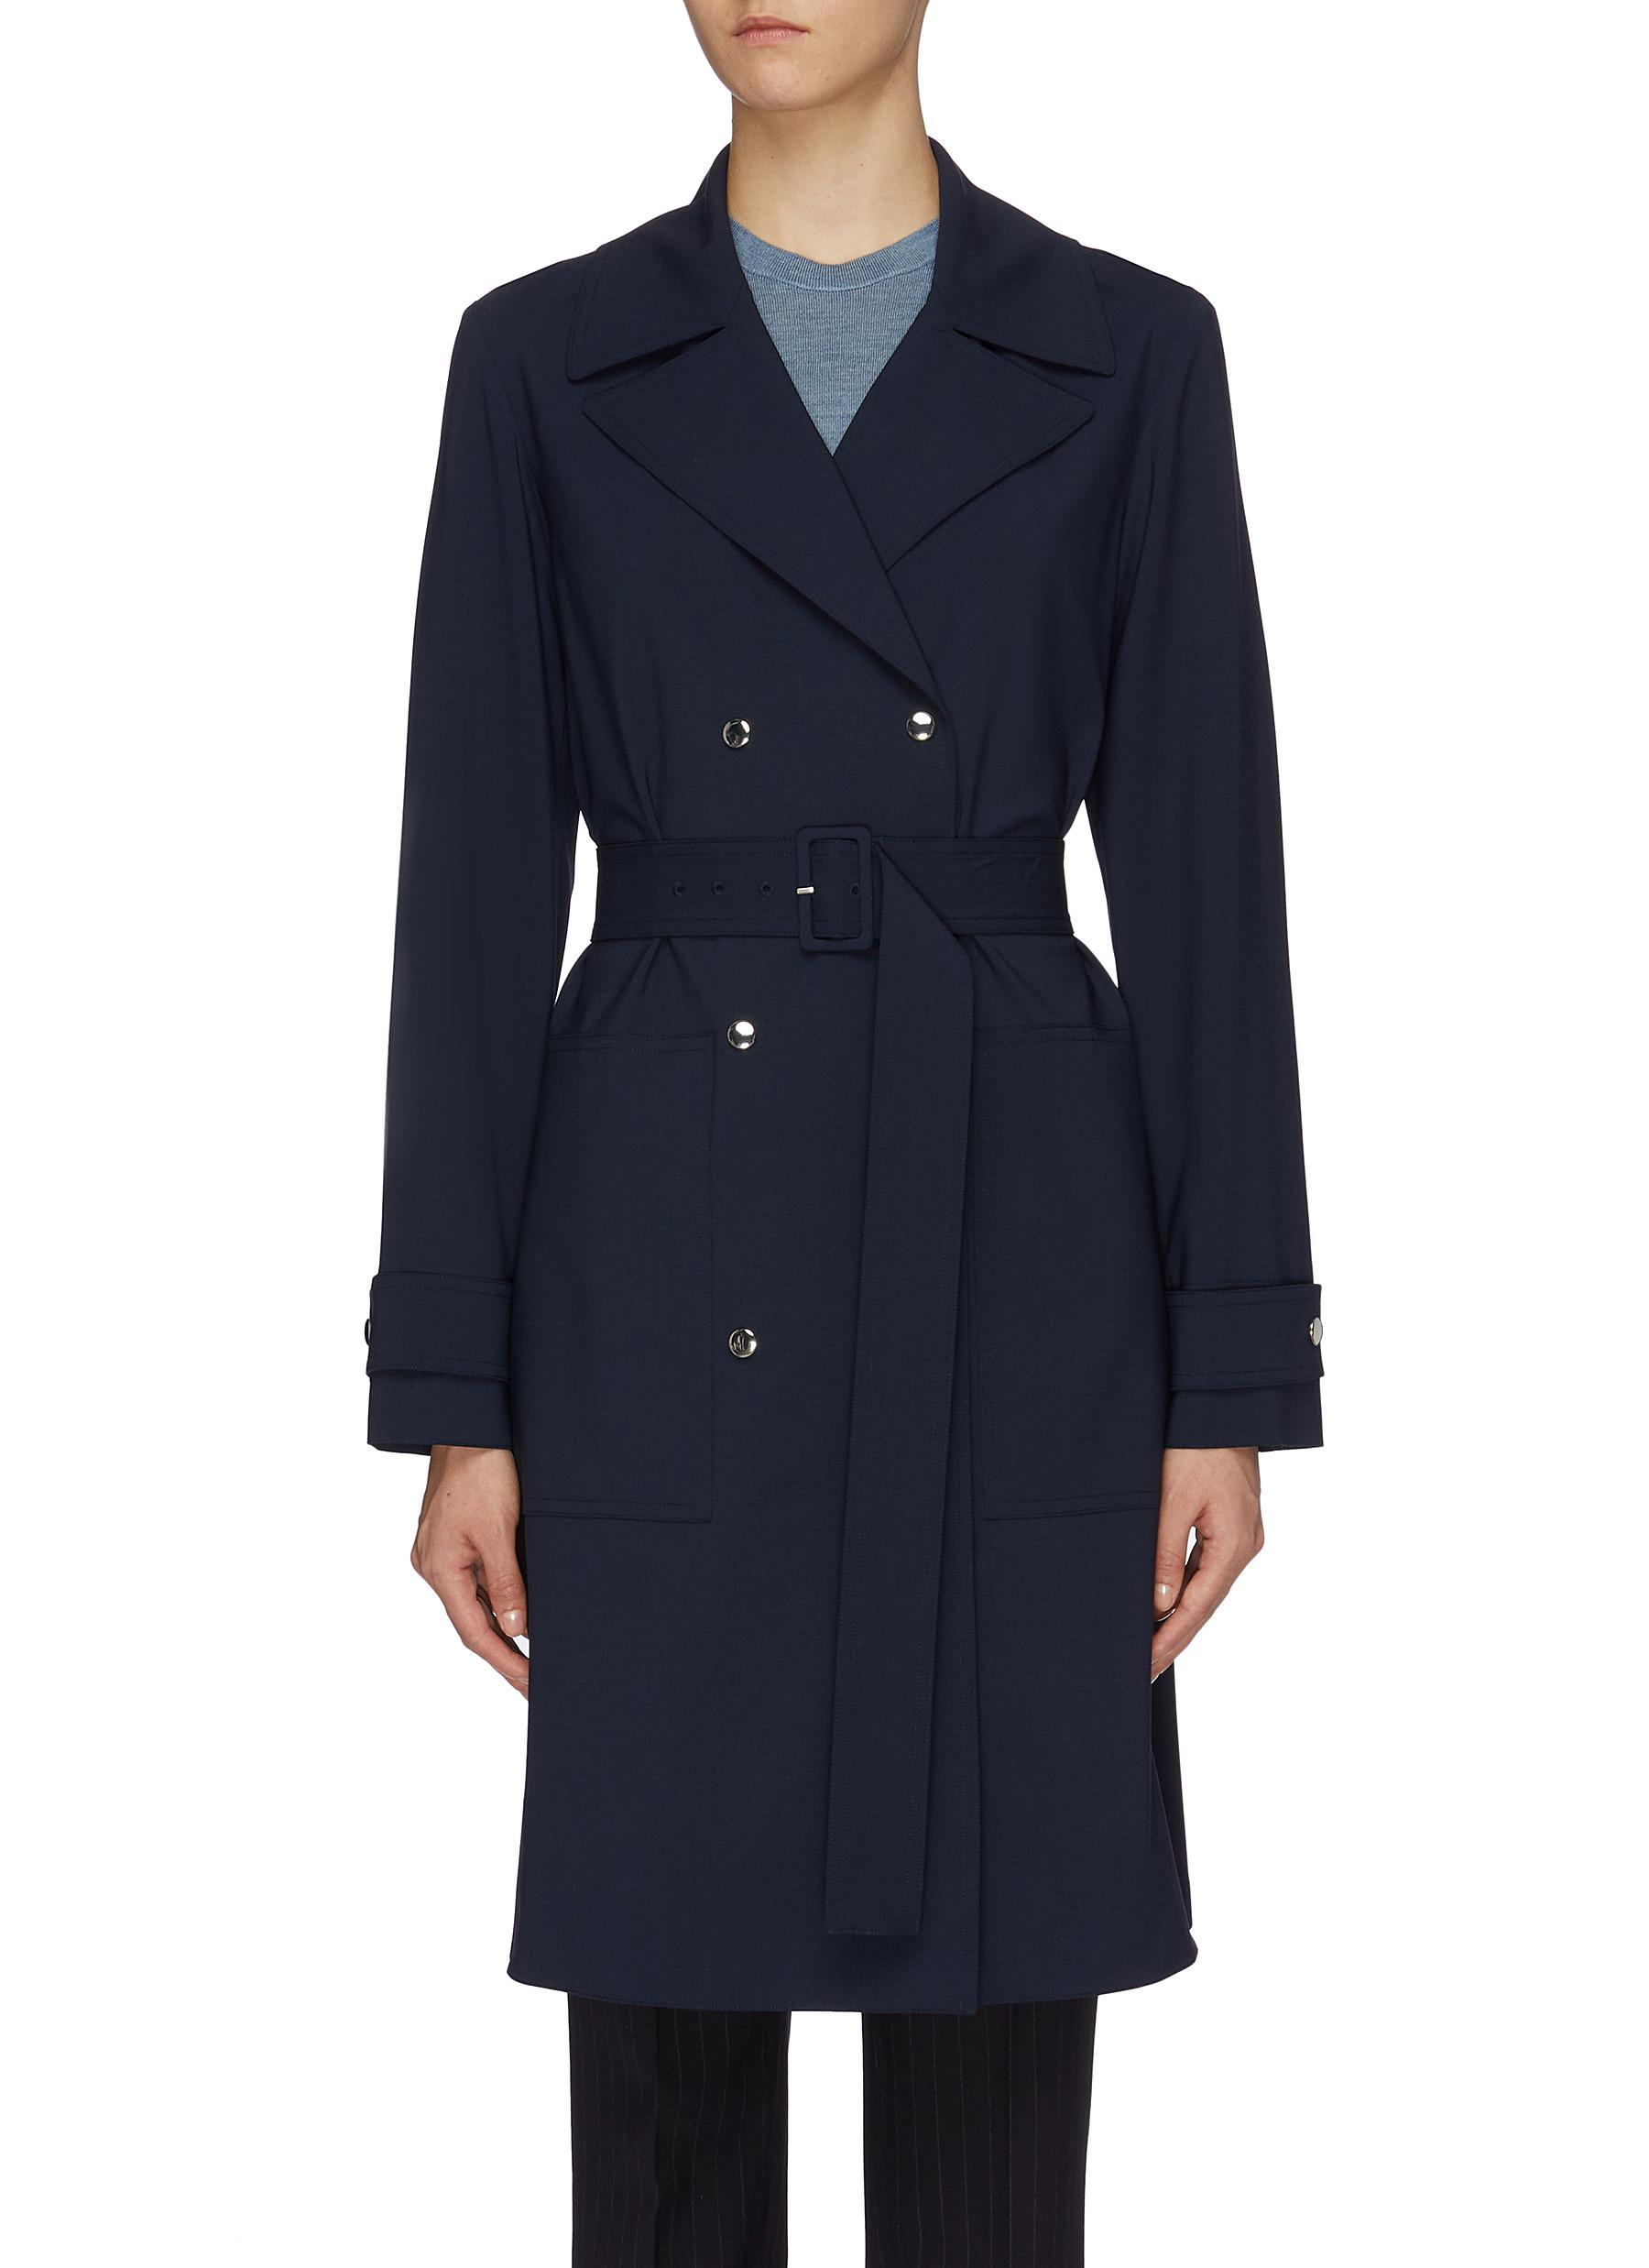 Belted virgin wool oversized military coat by Theory